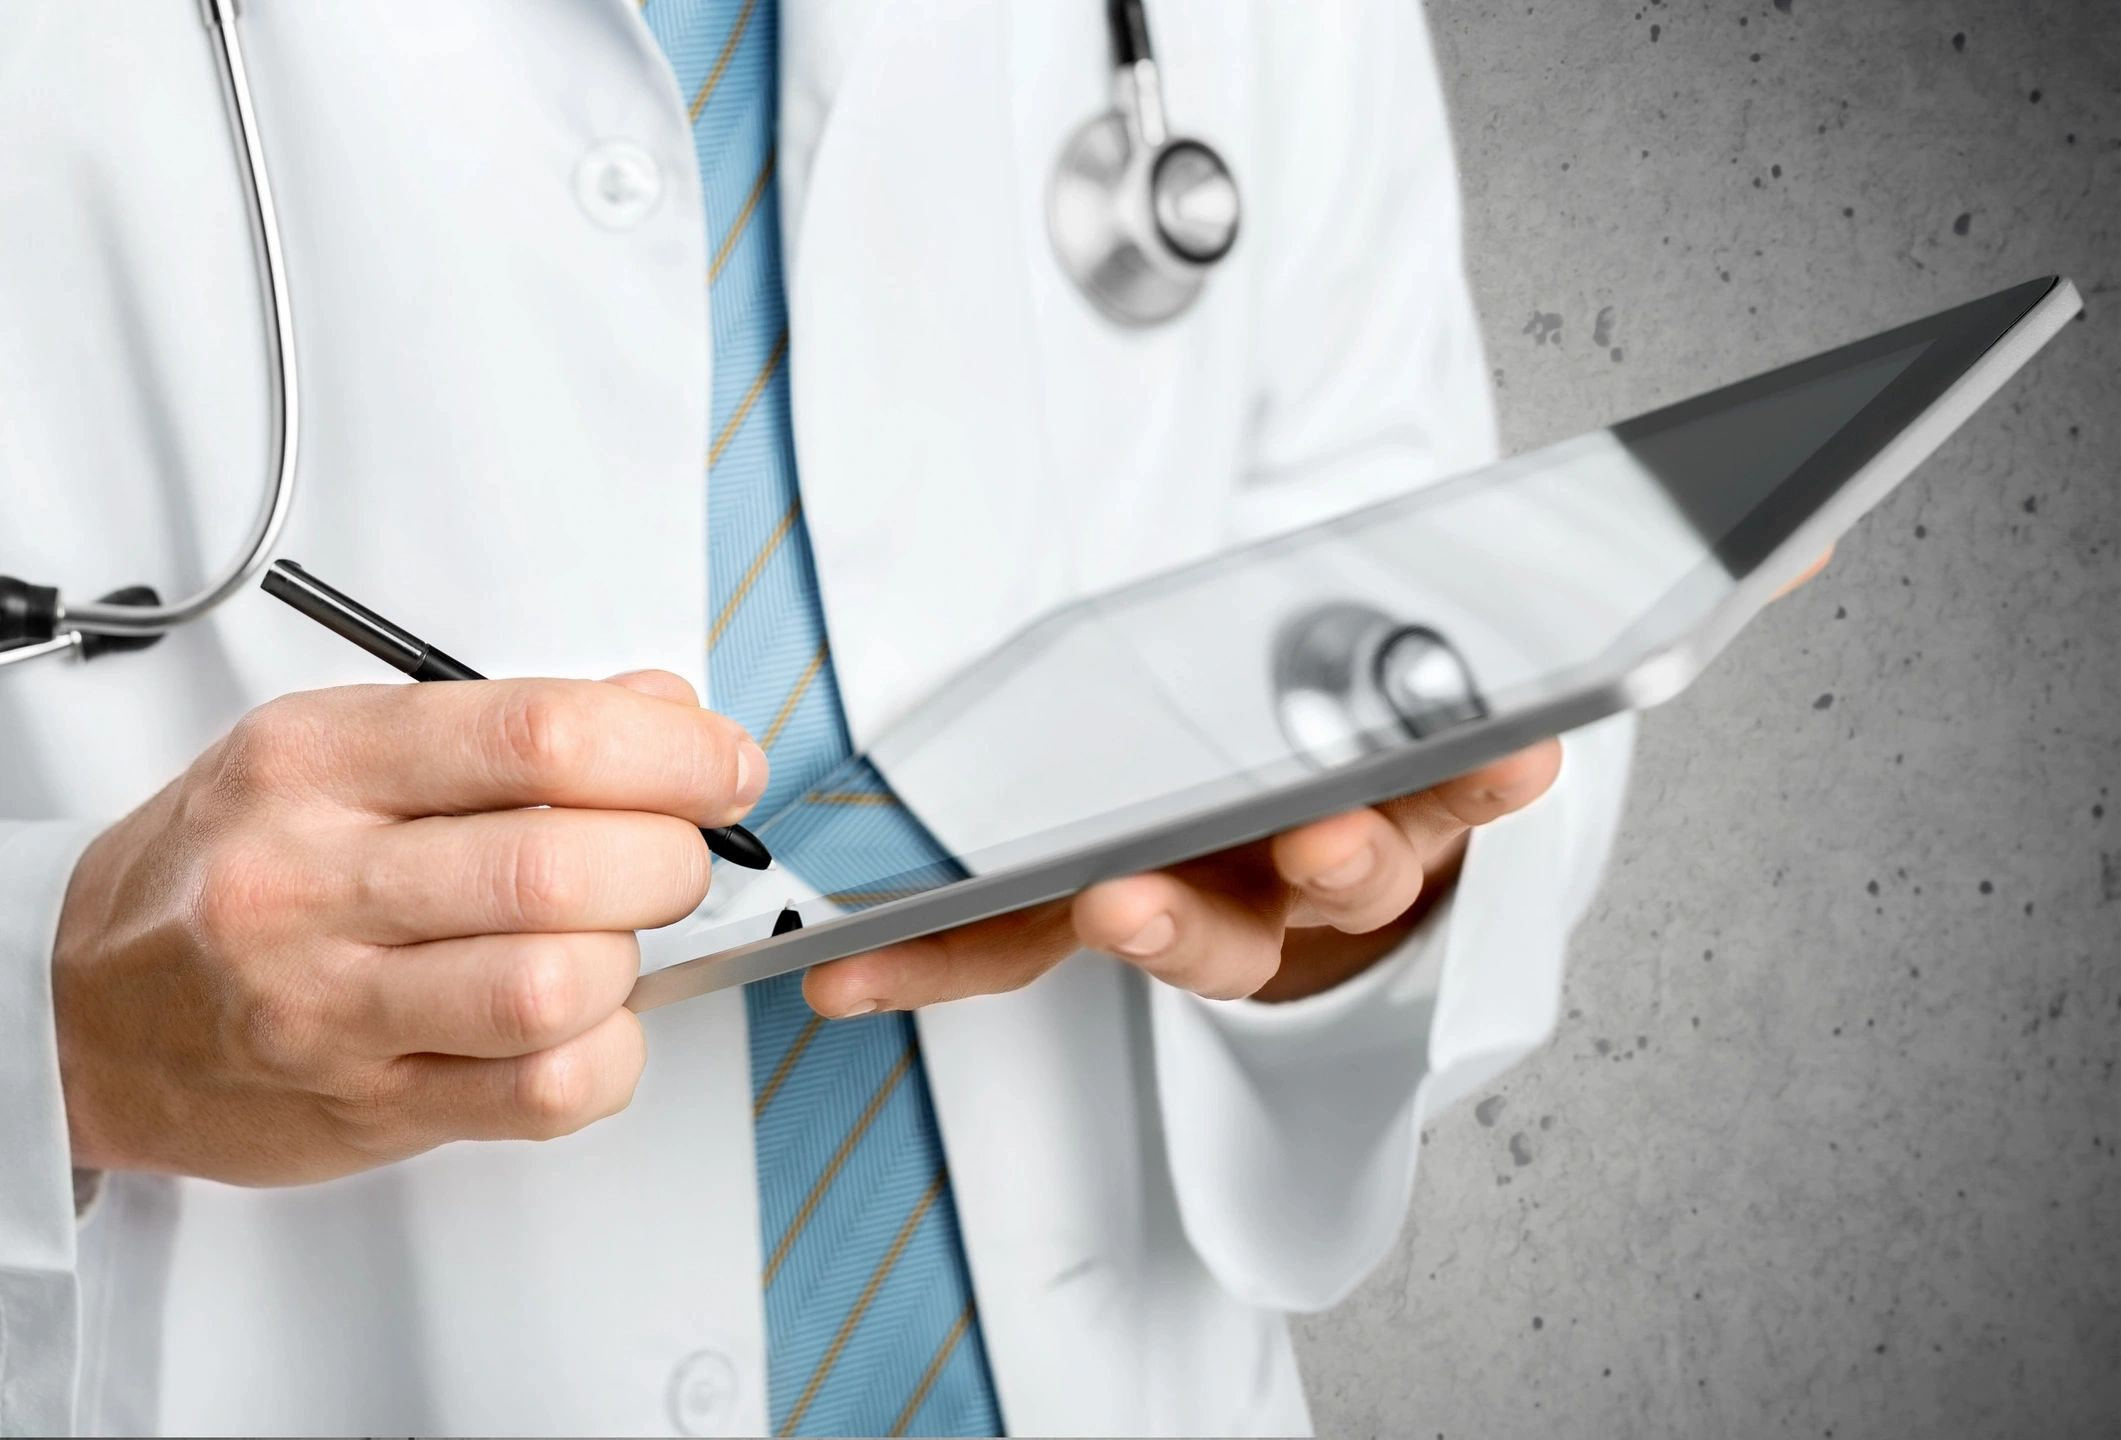 doctor using ipad stethoscope lab coat covid testing near me virtual visit health center hospital